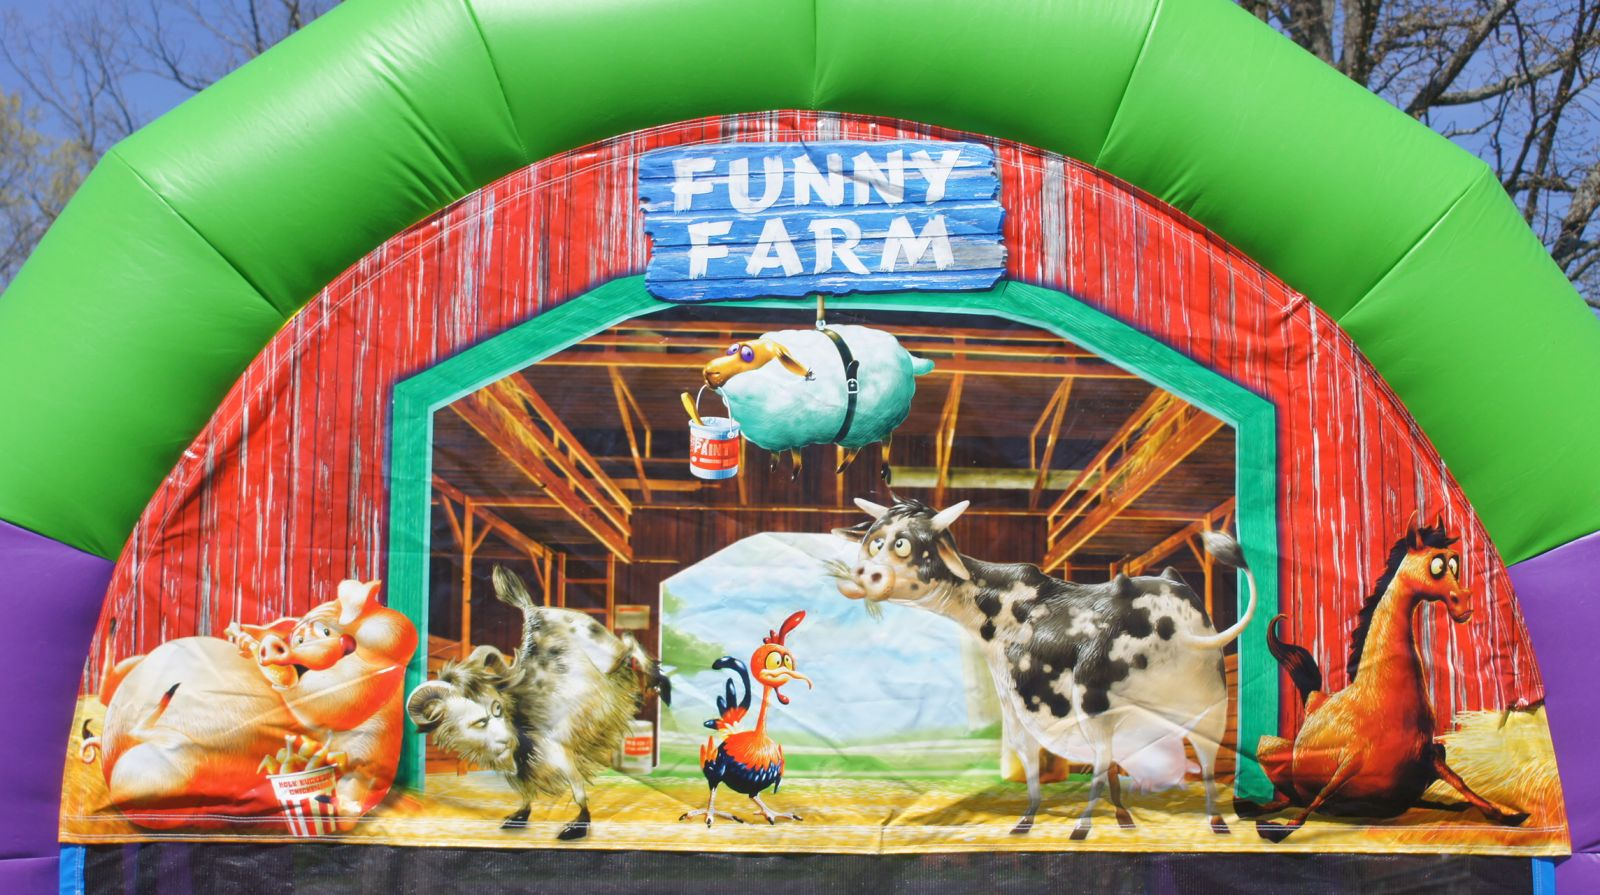 Funny Farm Bounce House Rental Nashville TN Jumping Hearts Party Rentals